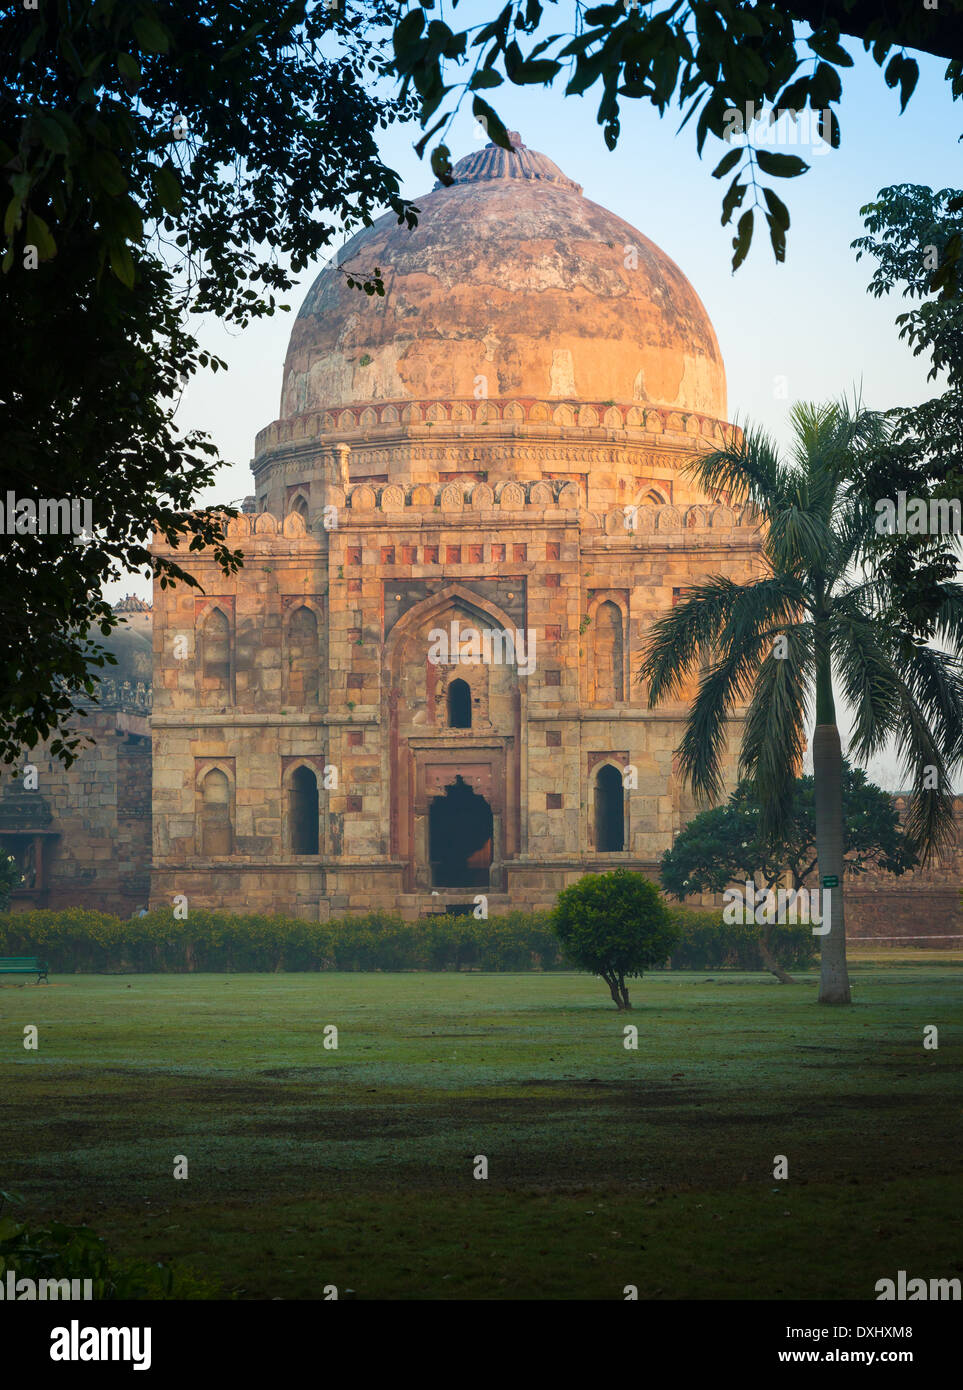 Bara Gumbad in Lodi Gardens, New Delhi, India Immagini Stock